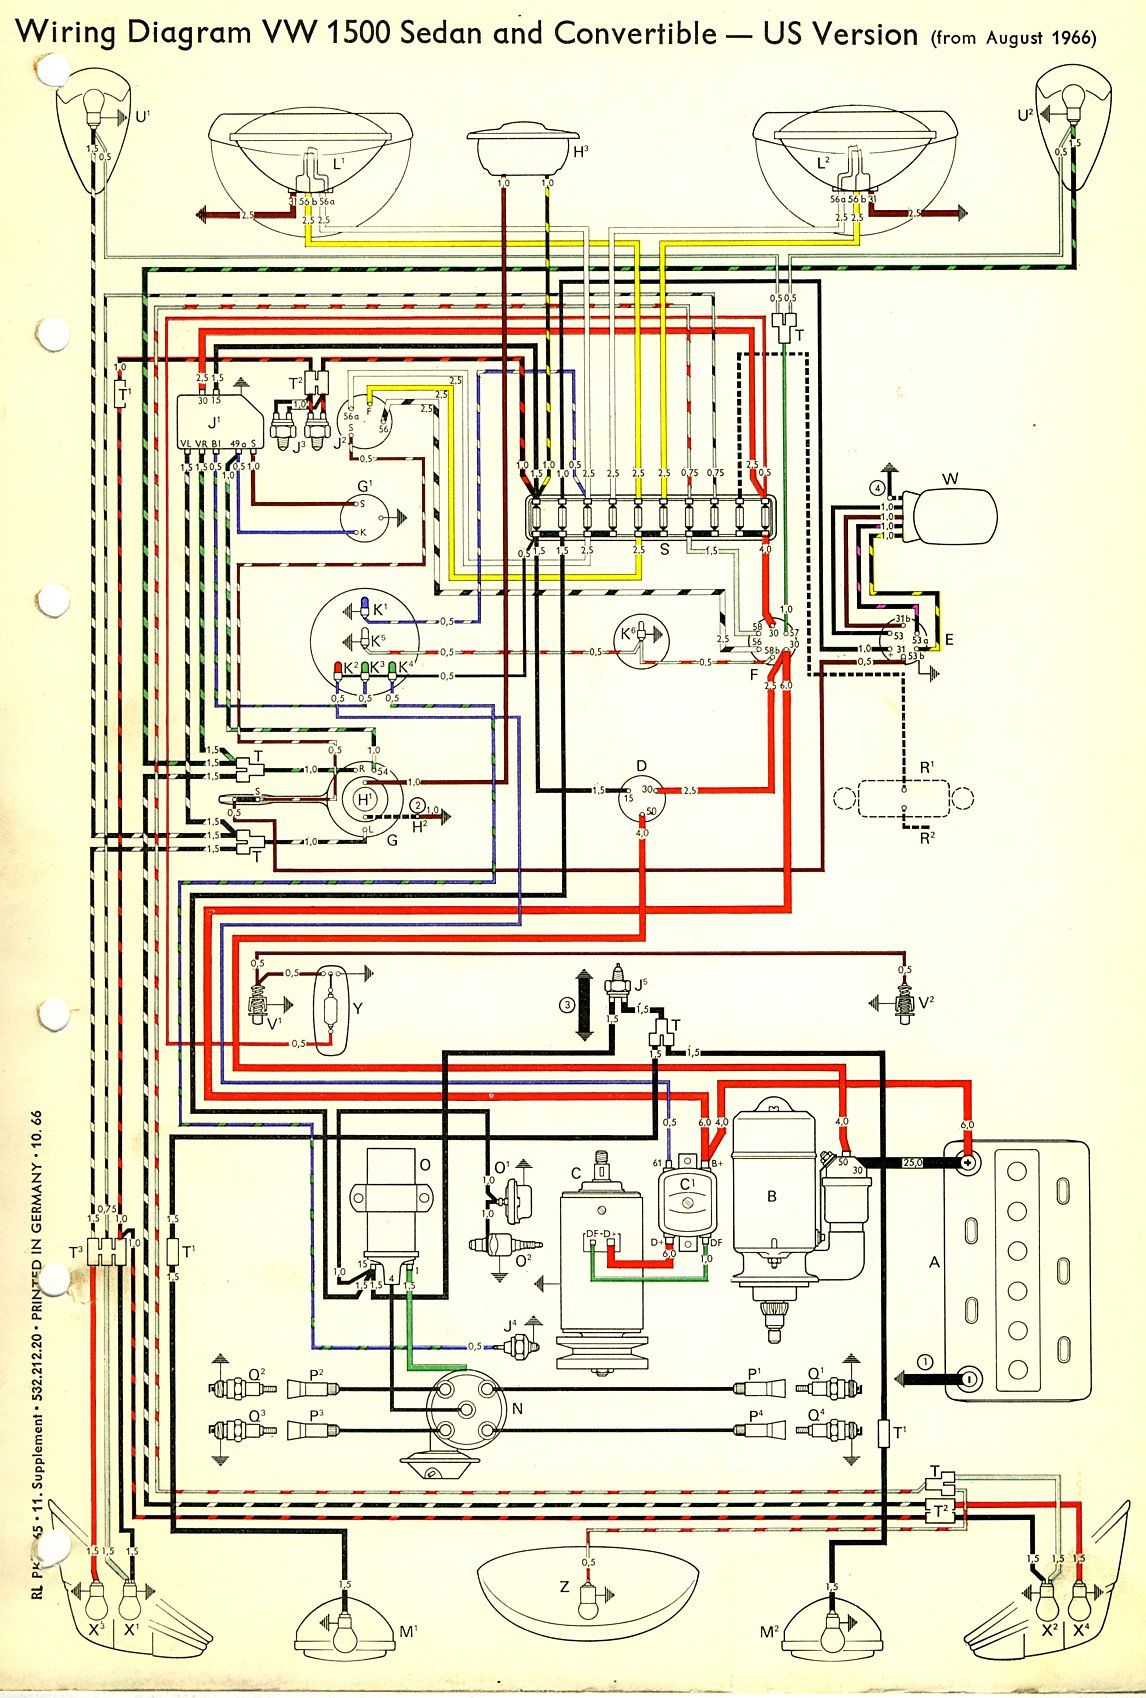 1adf990c0efb617c789fdd21338448b0 1967 beetle wiring diagram (usa) thegoldenbug com best 1967 vw vw bug wiring diagram at creativeand.co